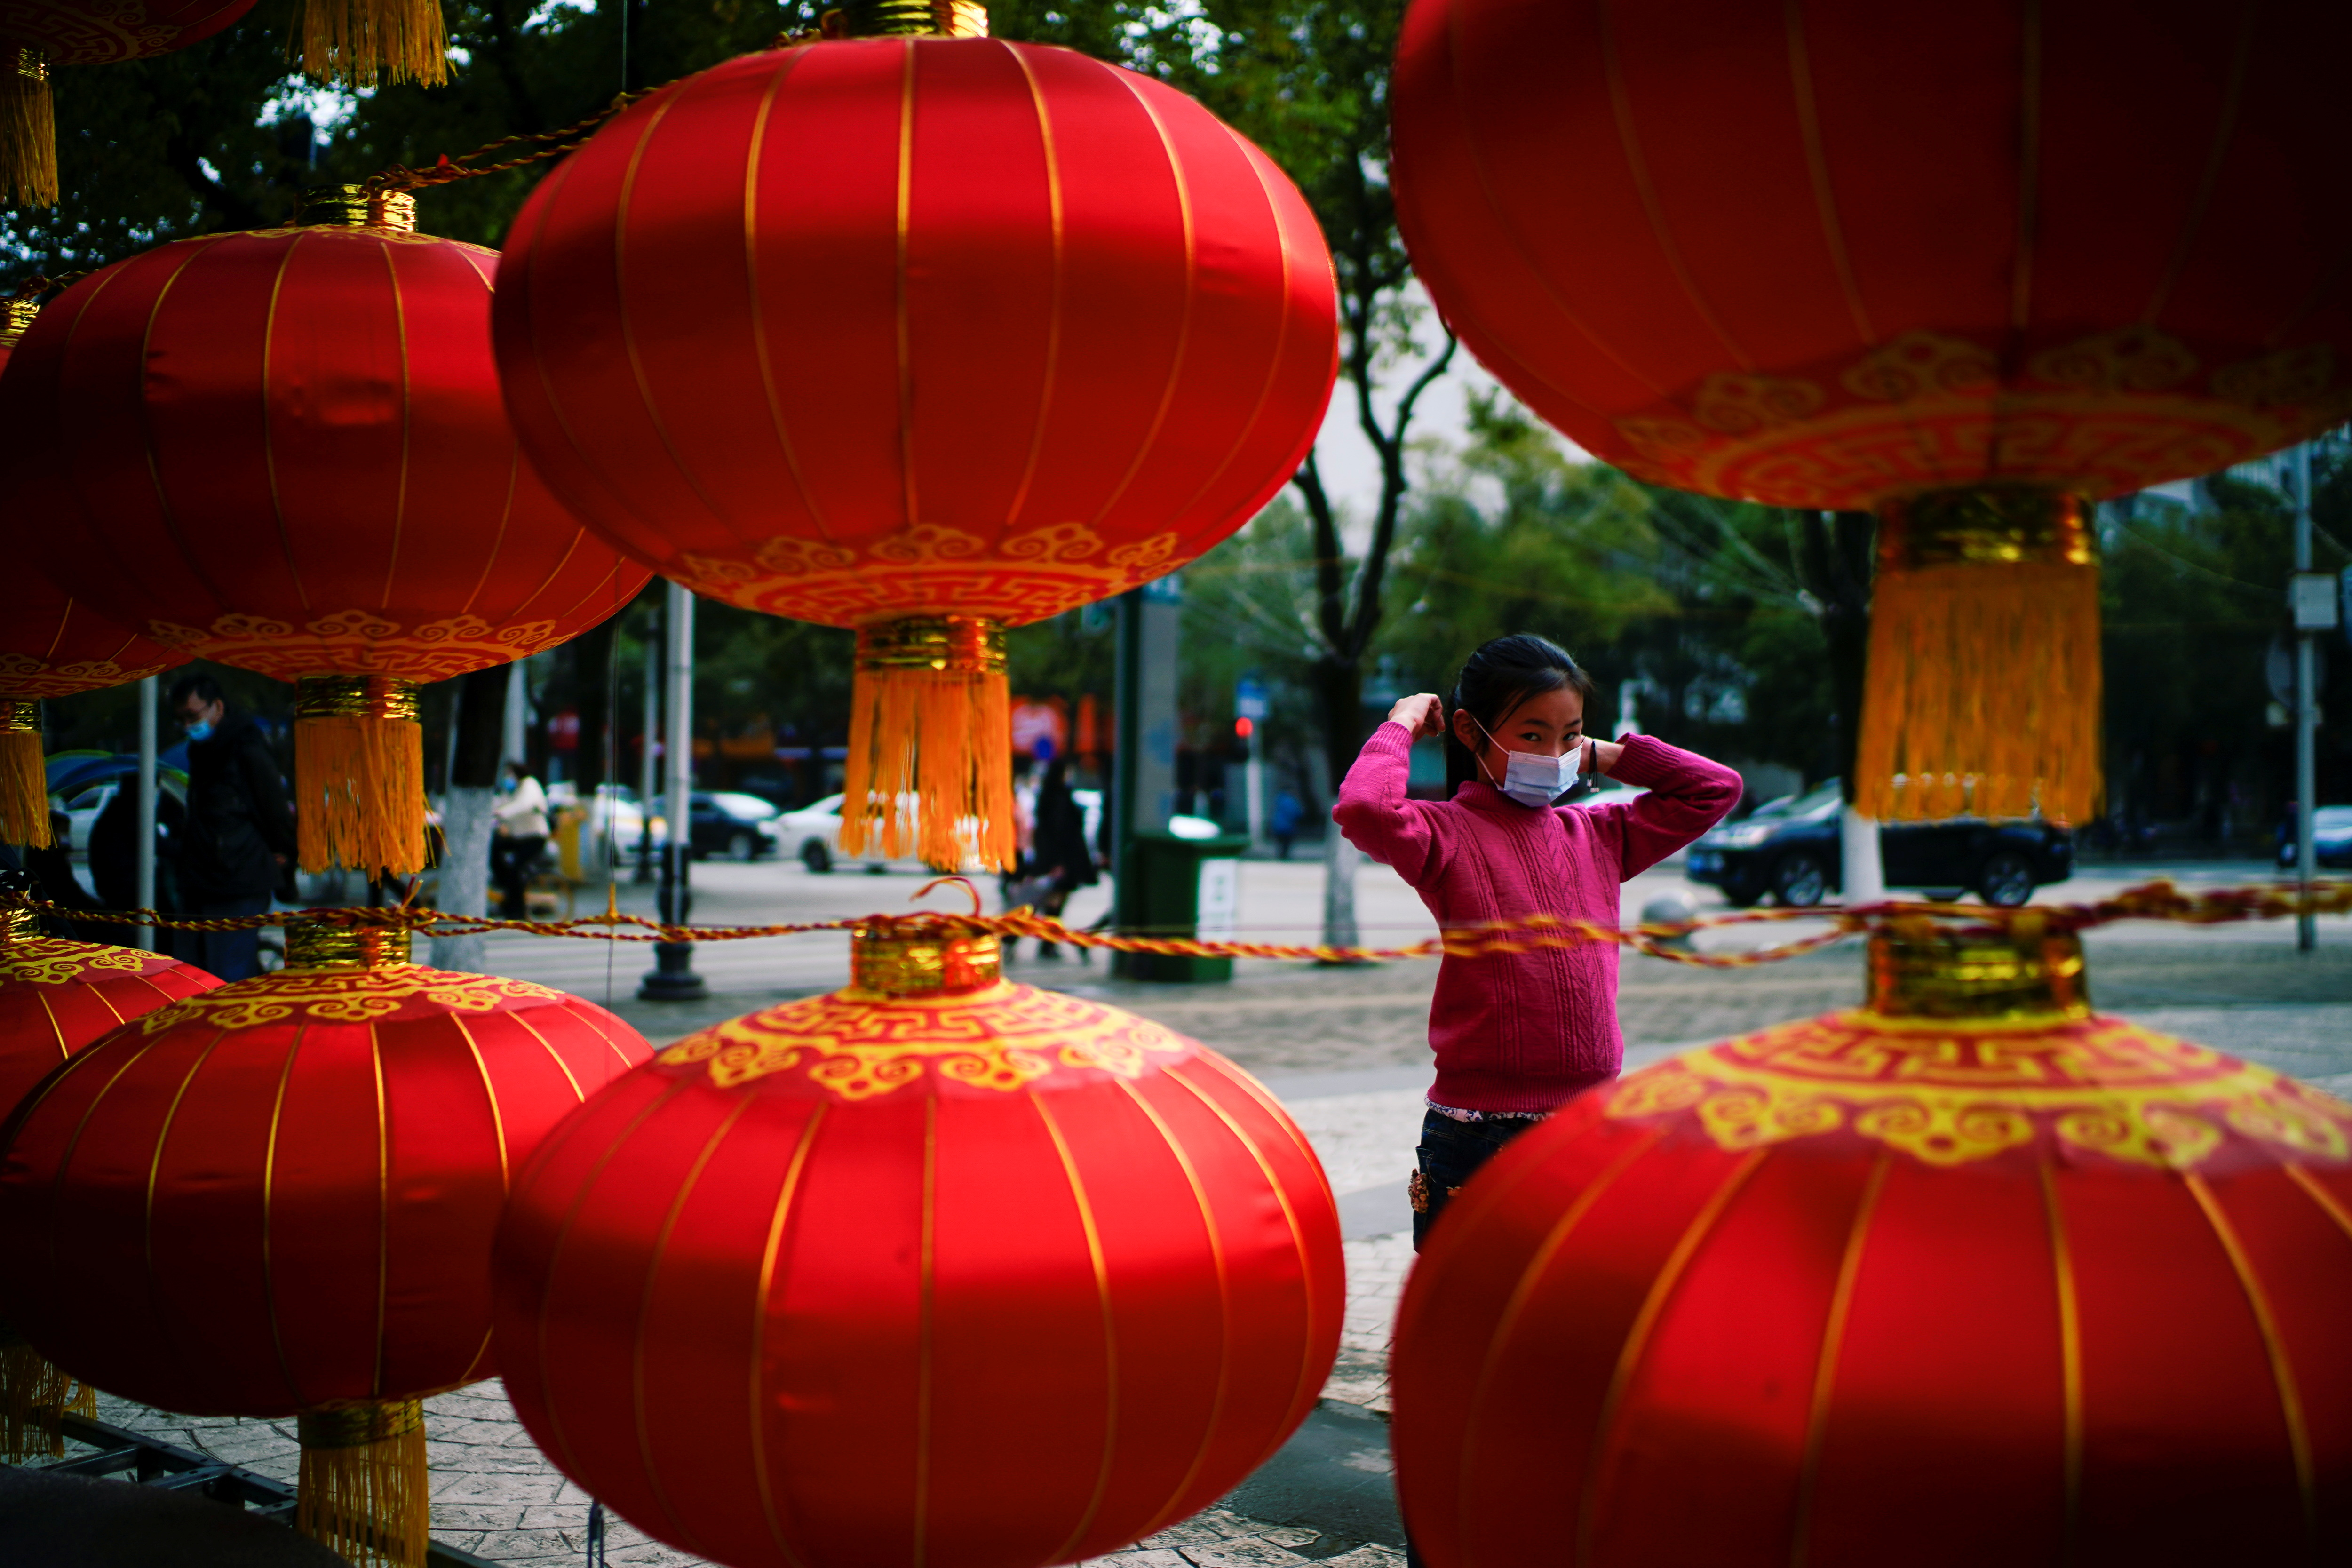 Covid travel curbs set to dampen party mood for Lunar New Year